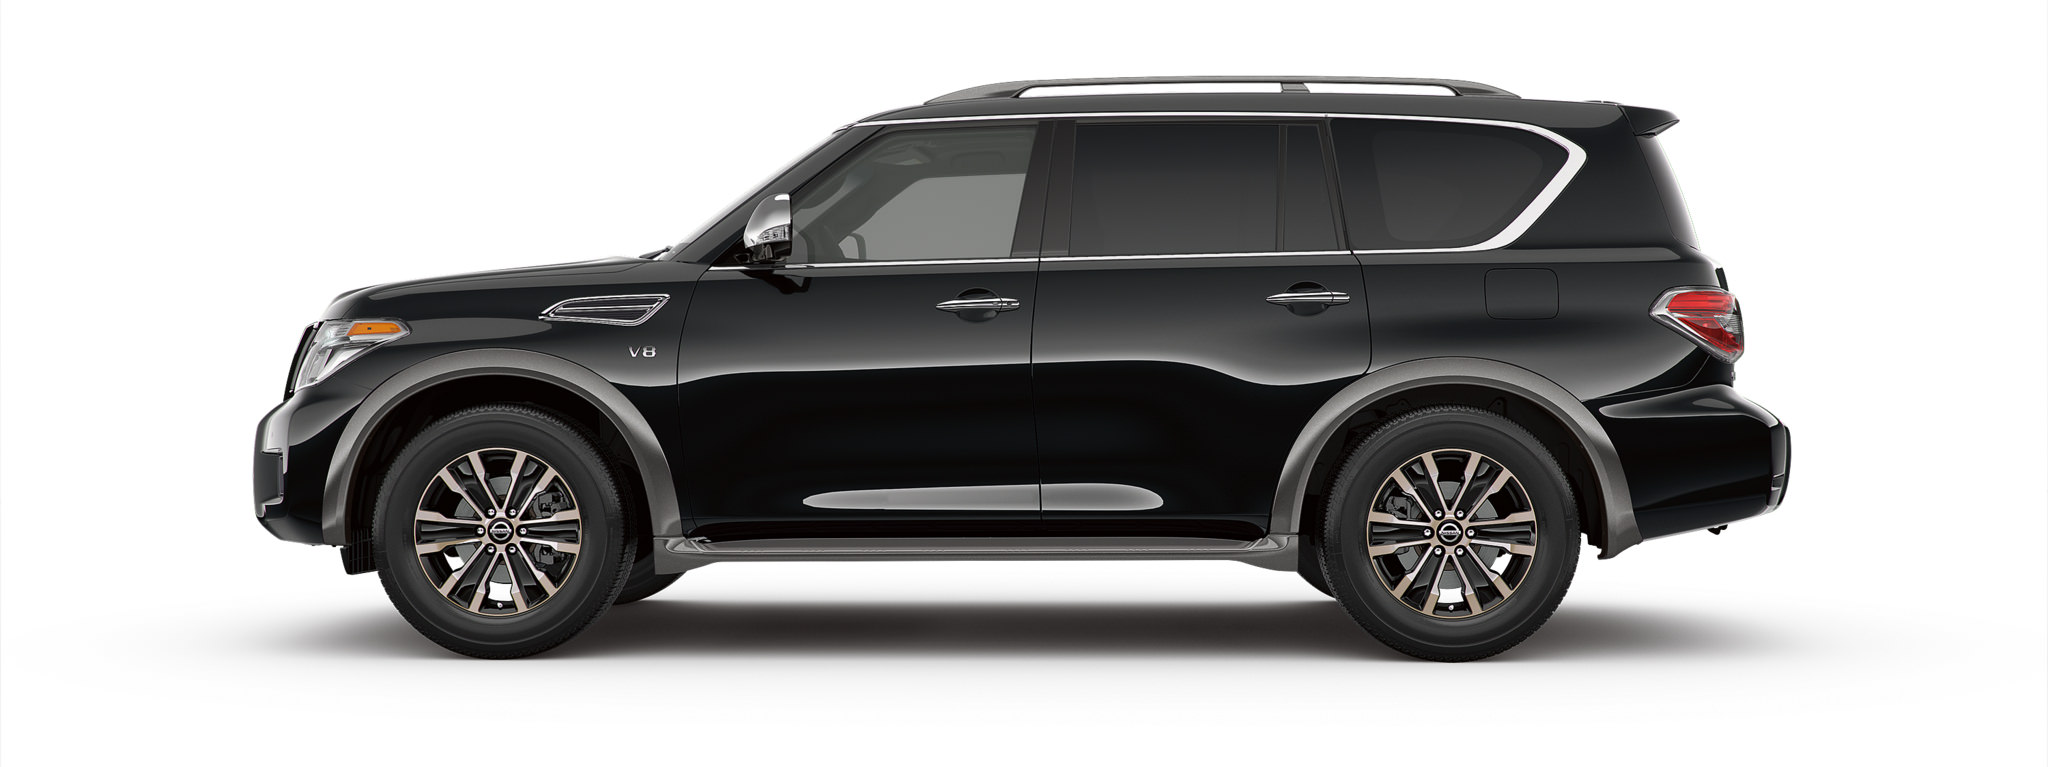 2017 nissan armada earns suv of the year title the news wheel. Black Bedroom Furniture Sets. Home Design Ideas